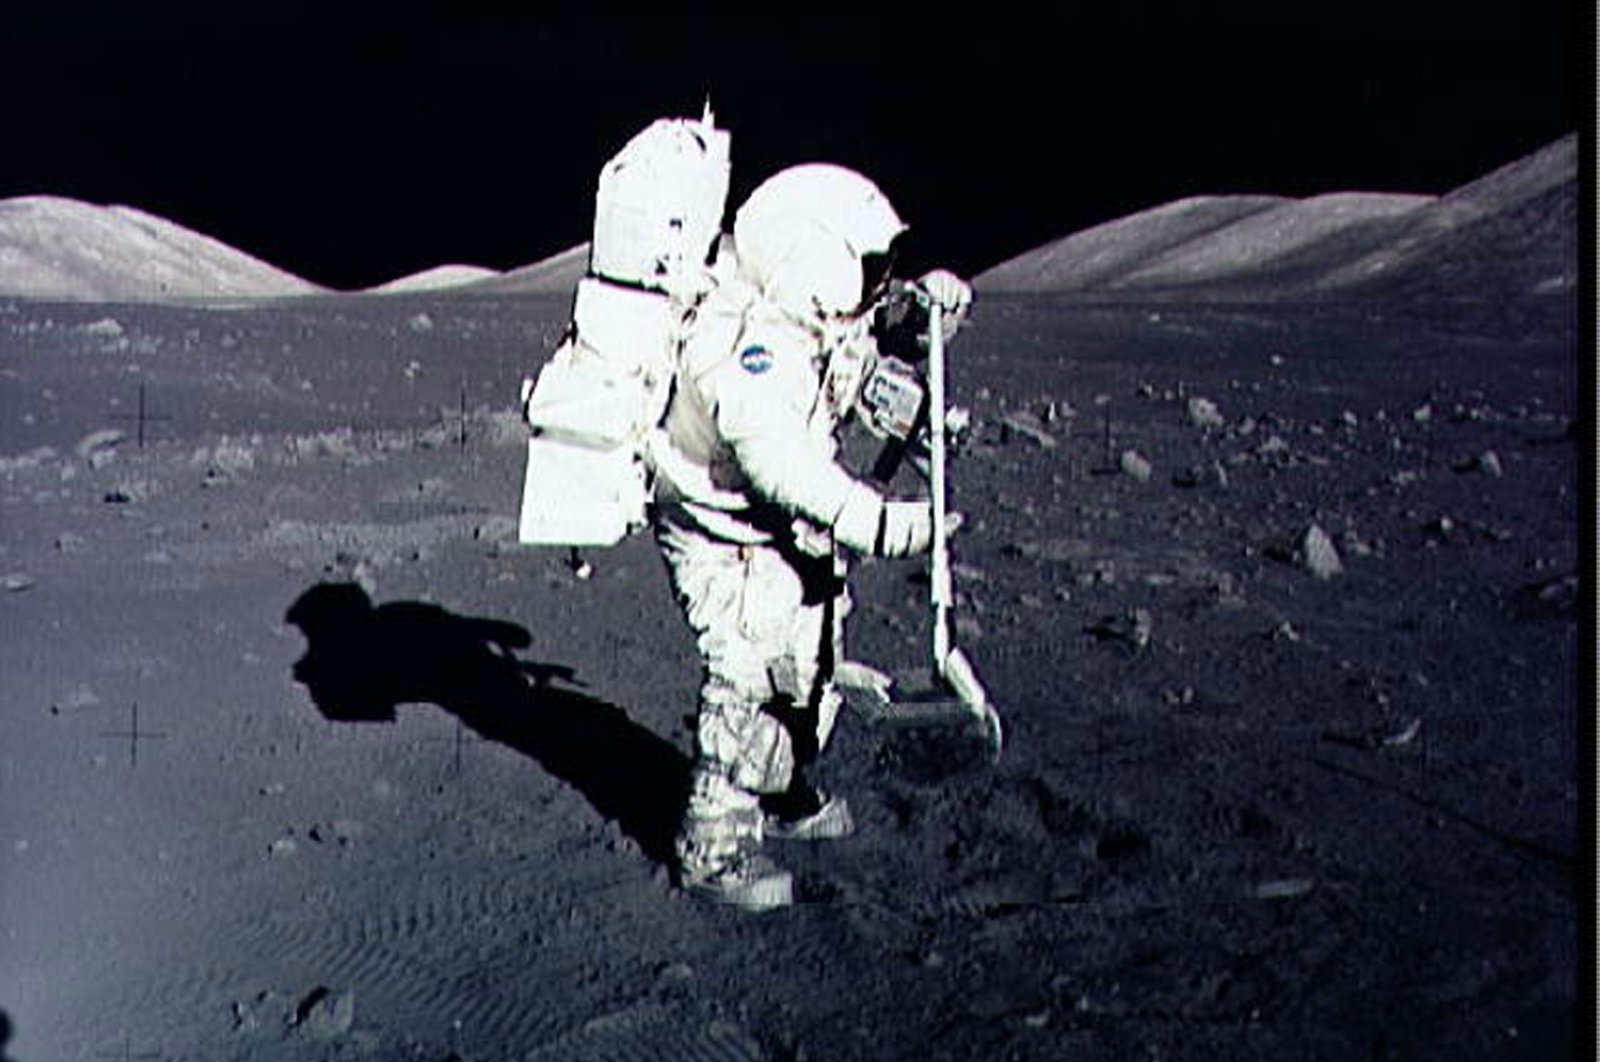 Astronaut Harrison Schmitt collects lunar rock samples at the Taurus-Littrow landing site on the moon during the Apollo 17 mission, Dec. 10, 1972. (NASA Handout Photo via AFP)